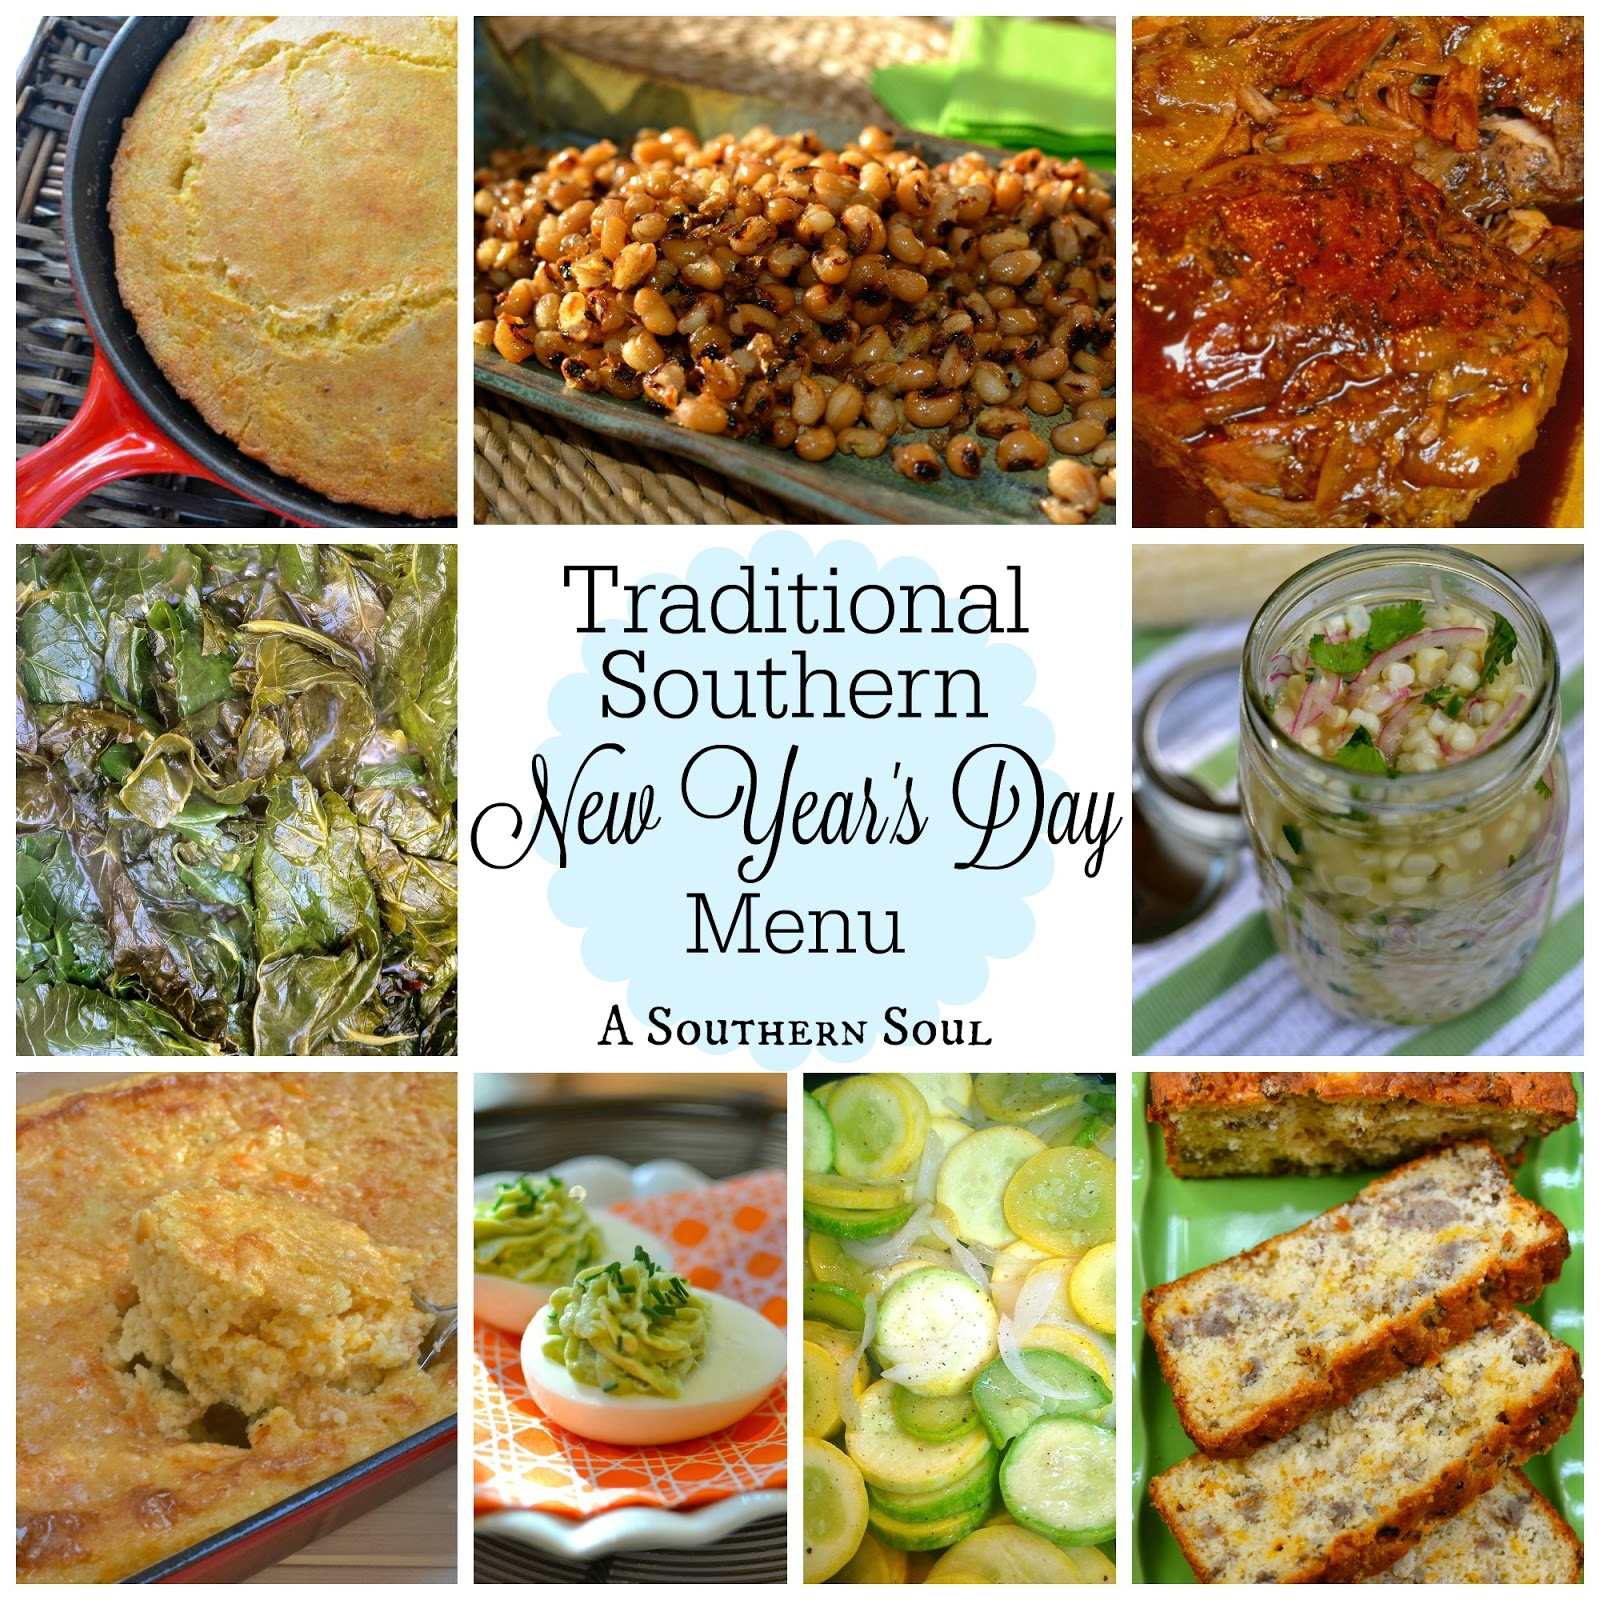 Traditional Southern New Year's Day Menu | A Southern Soul